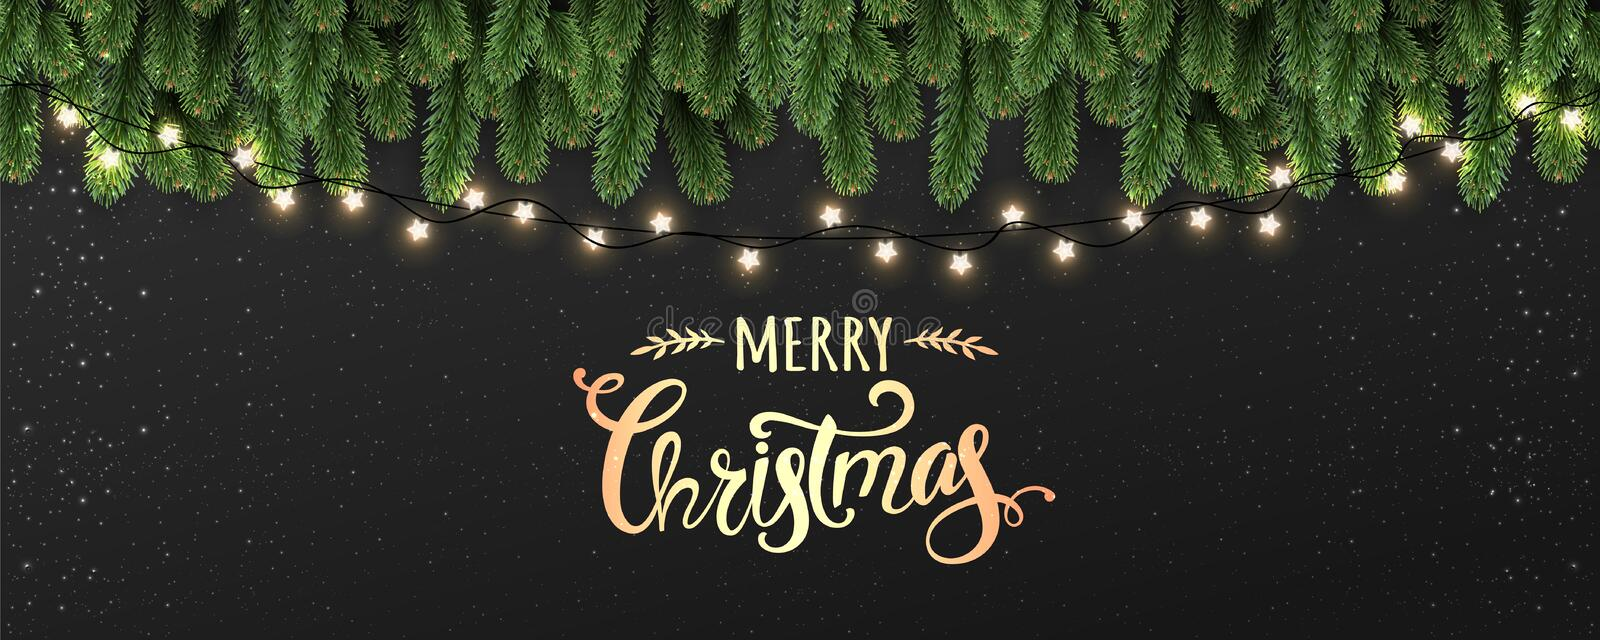 Merry Christmas Typographical on black background with tree branches decorated with stars, lights, snowflakes. Xmas theme. Vector Illustration vector illustration